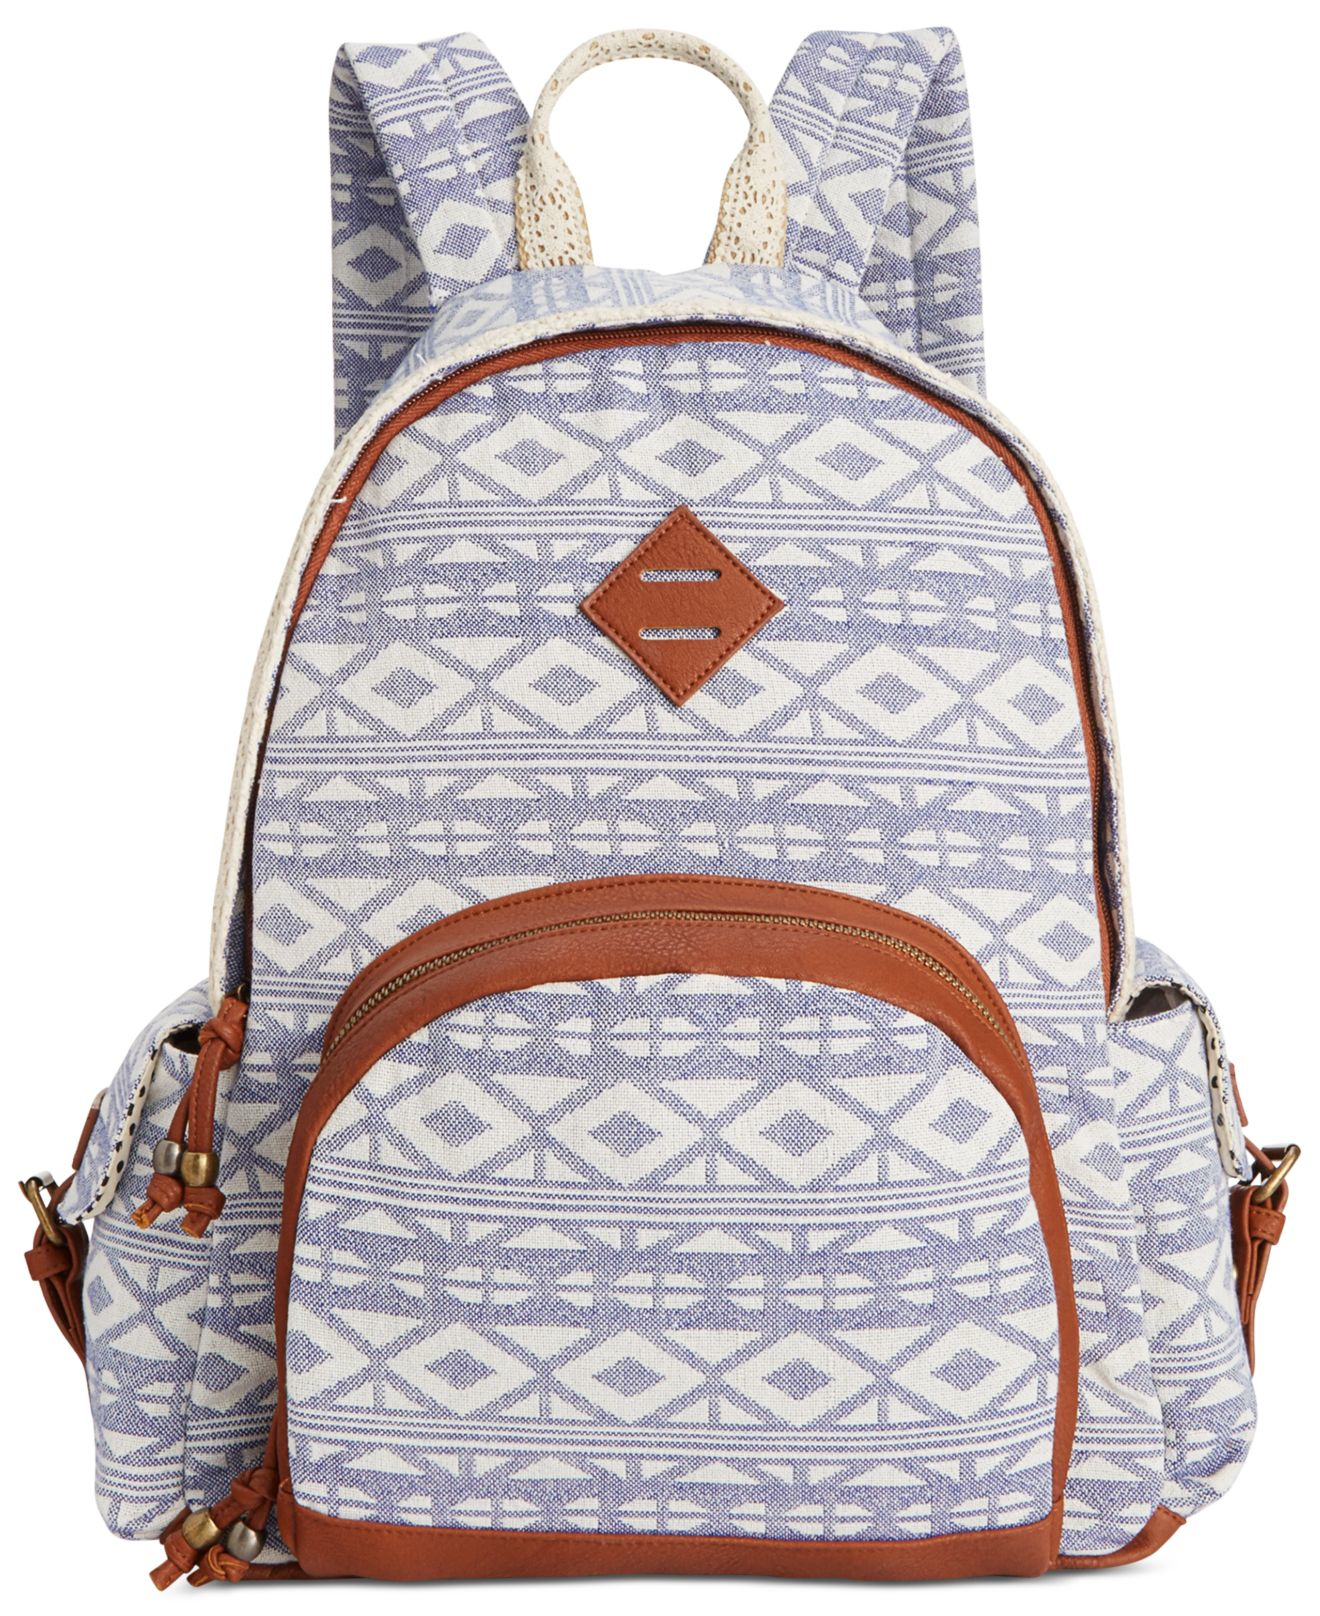 2be593089de351 Madden Girl Brecess Backpack in Blue - Lyst